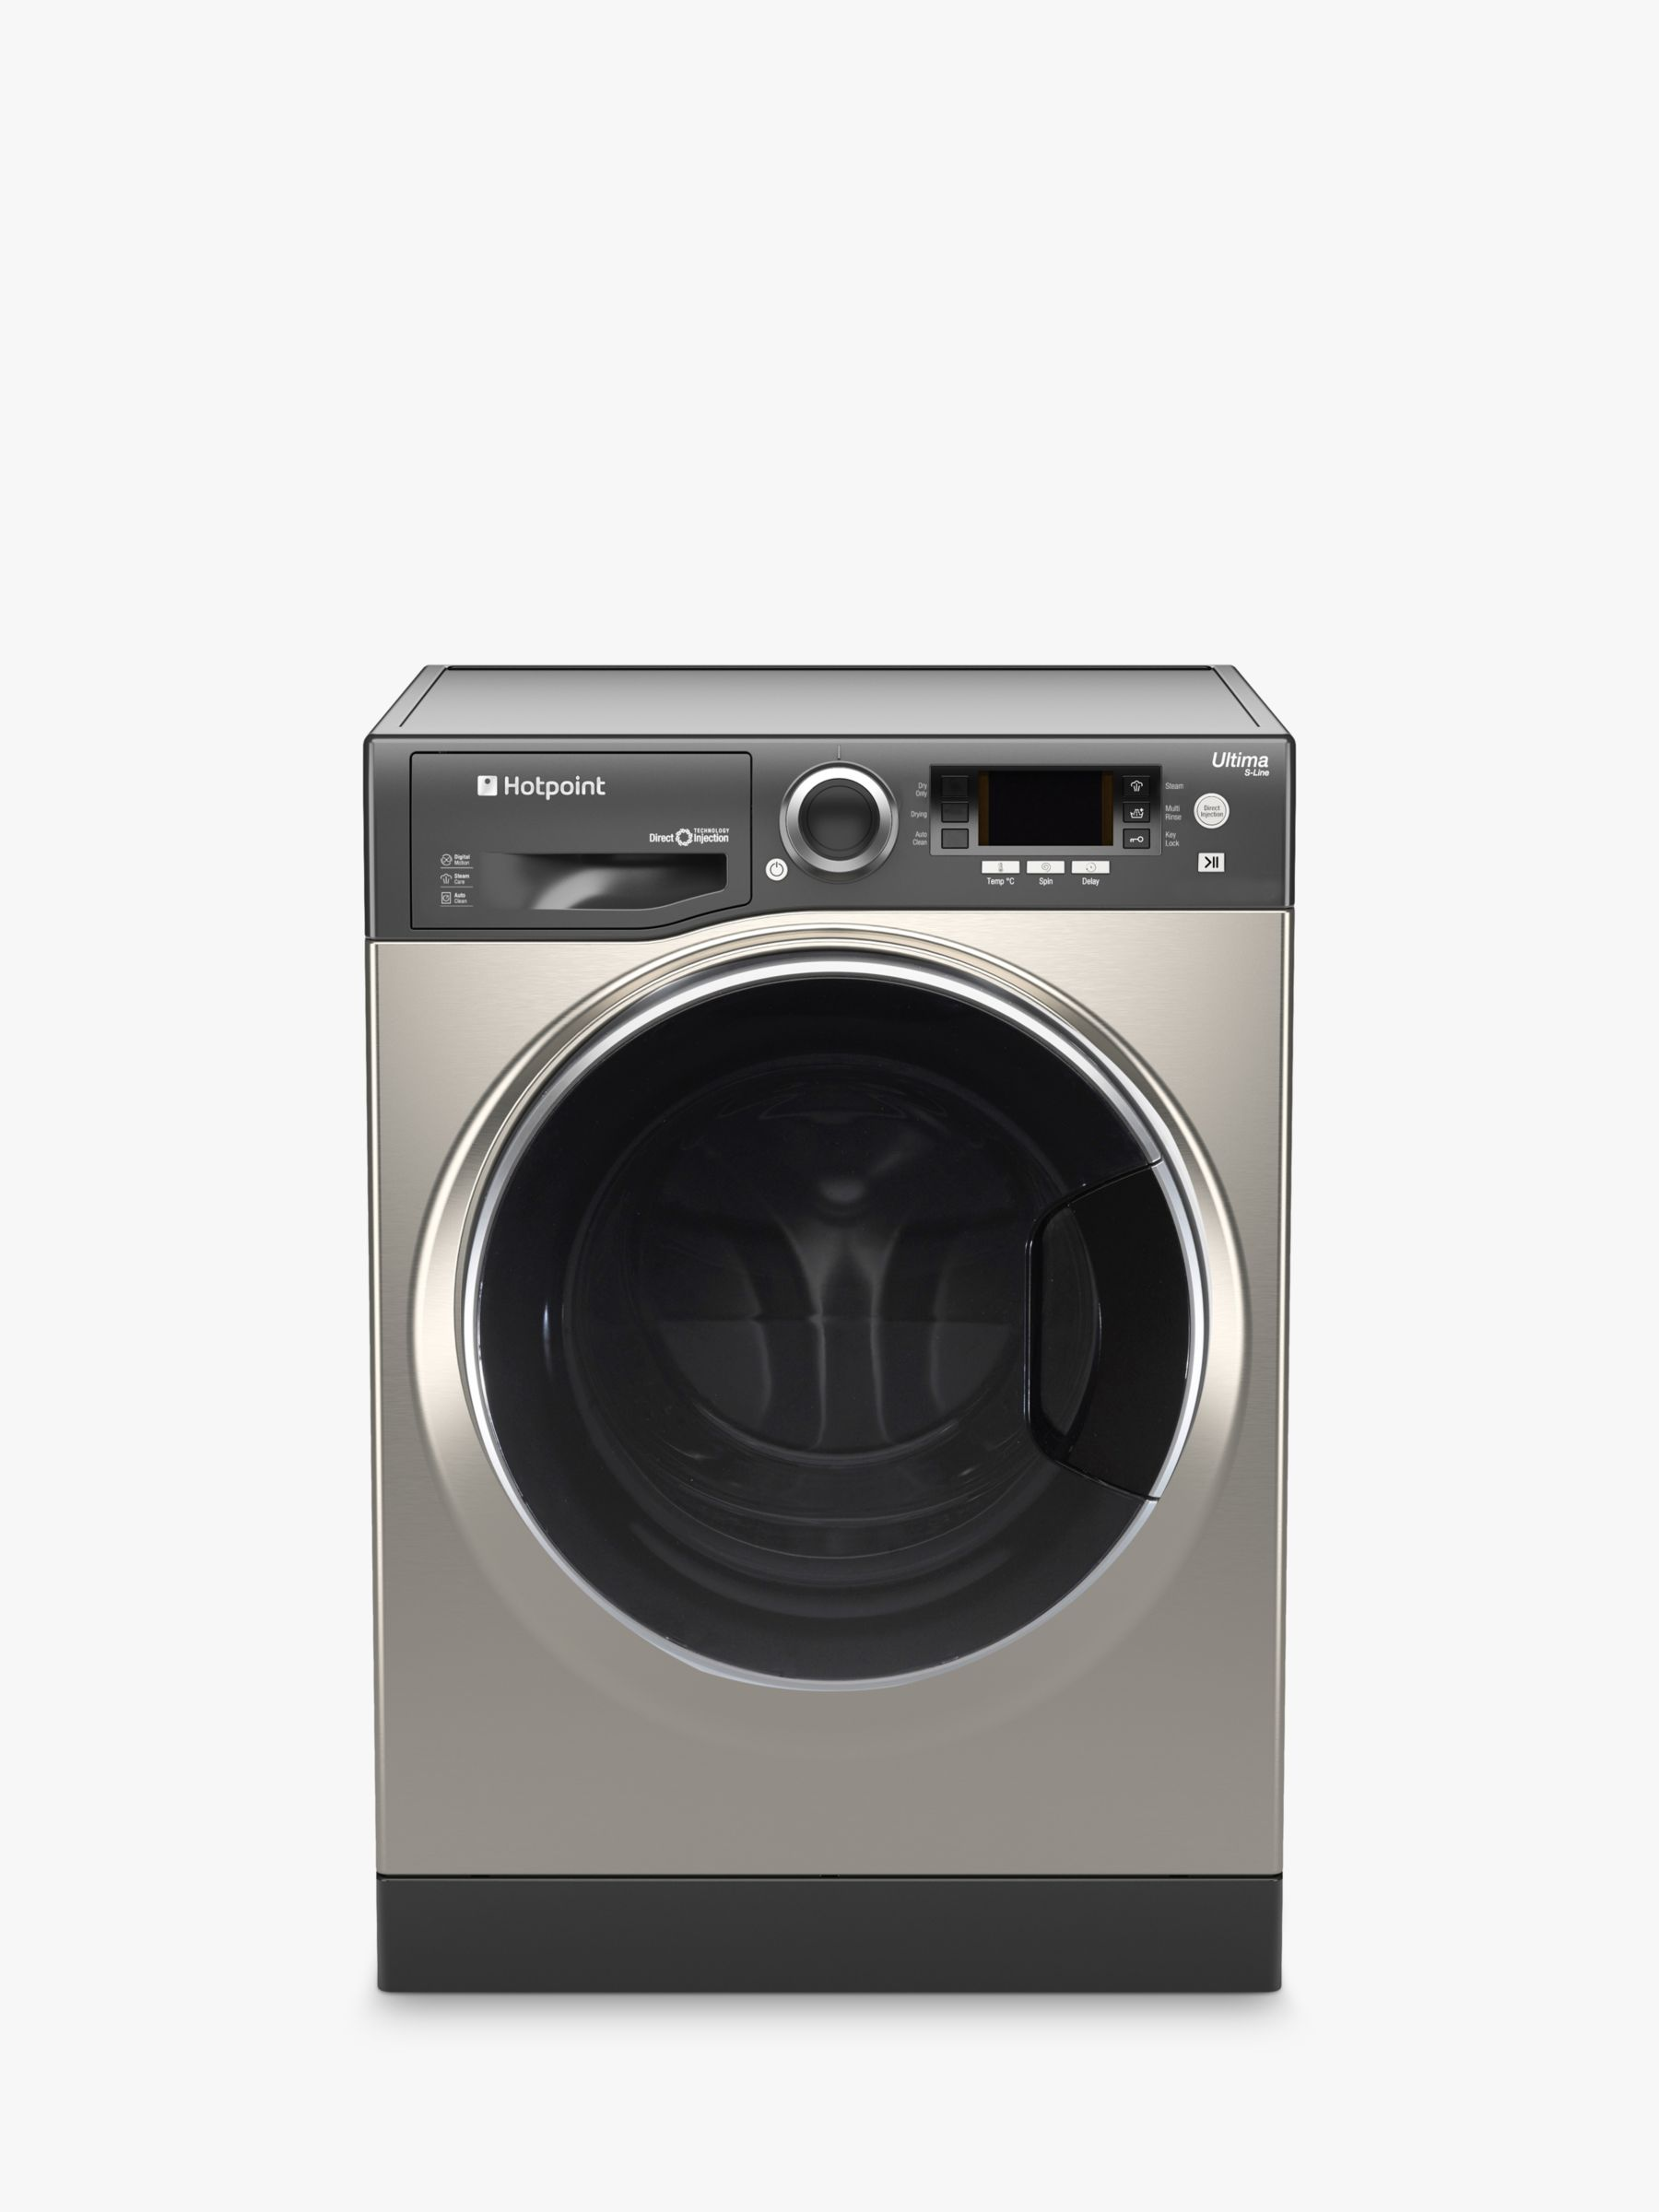 Hotpoint Hotpoint RD966JGDUK Washer Dryer, 9kg Wash/ 6kg Dry Load, A Energy Rating, 1600rpm Spin, Graphite